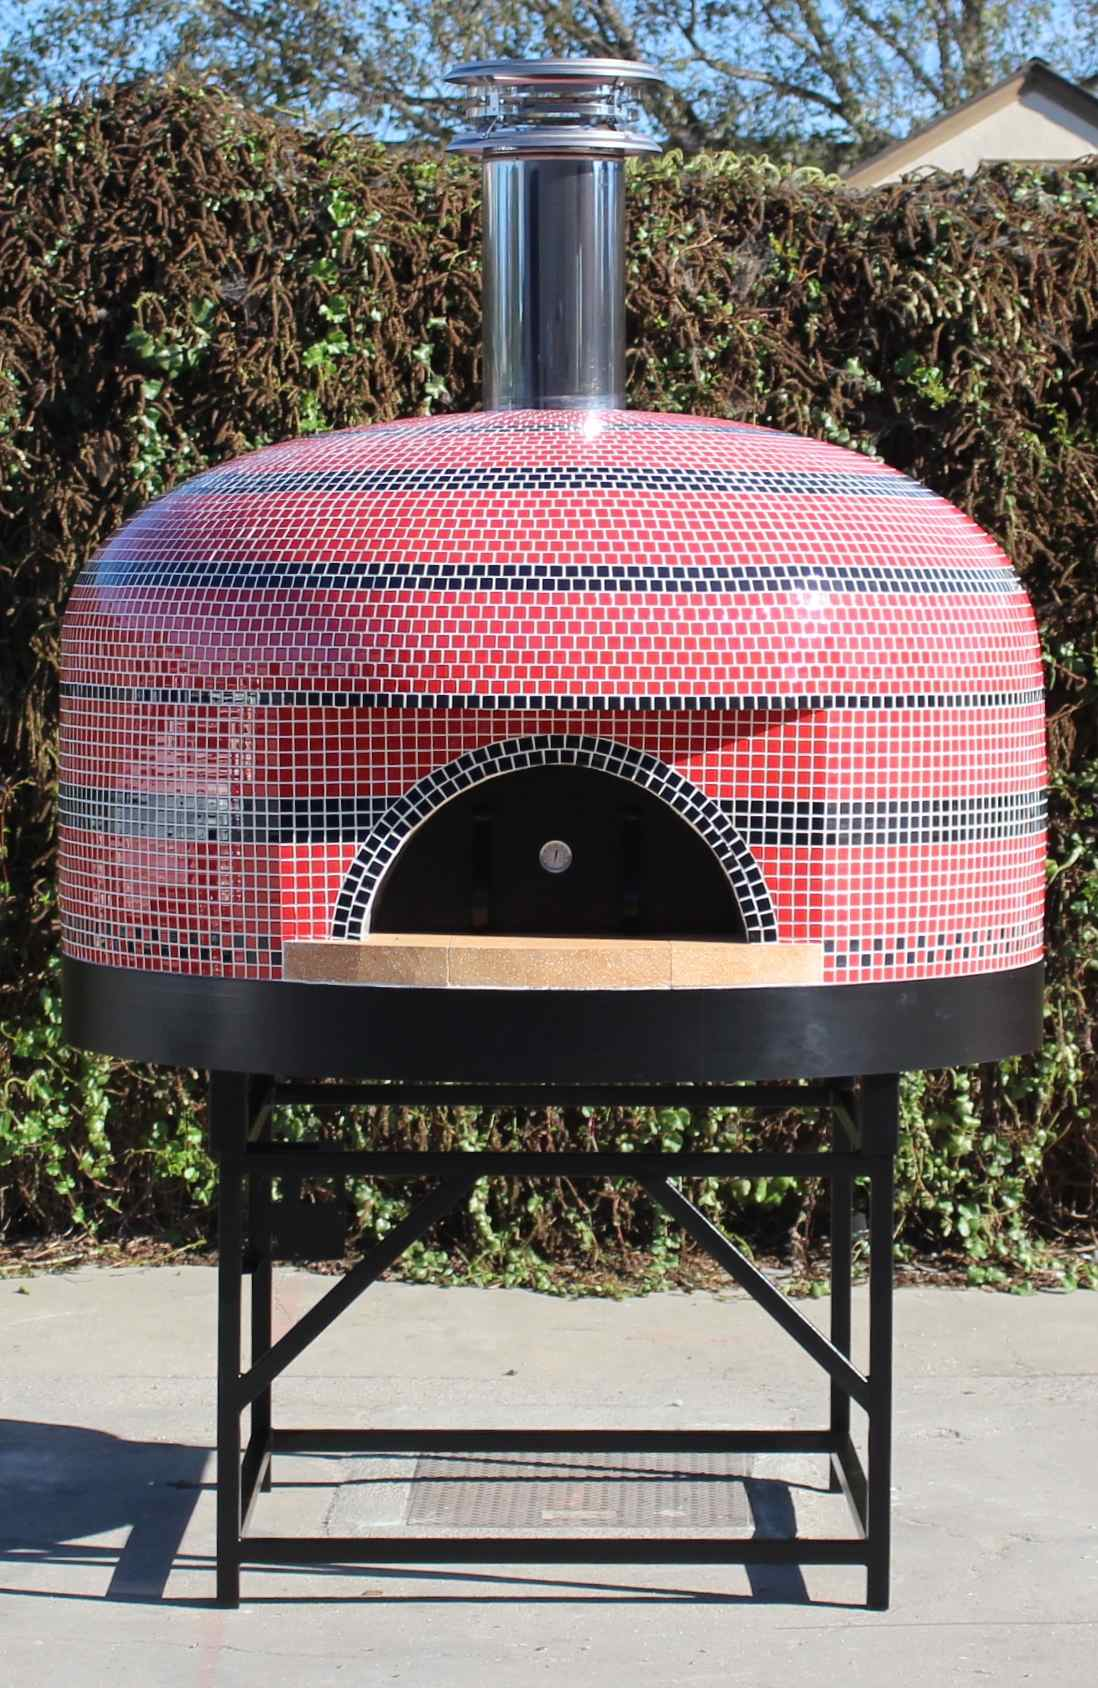 How To Install A Commercial Oven On A Metal Stand Forno